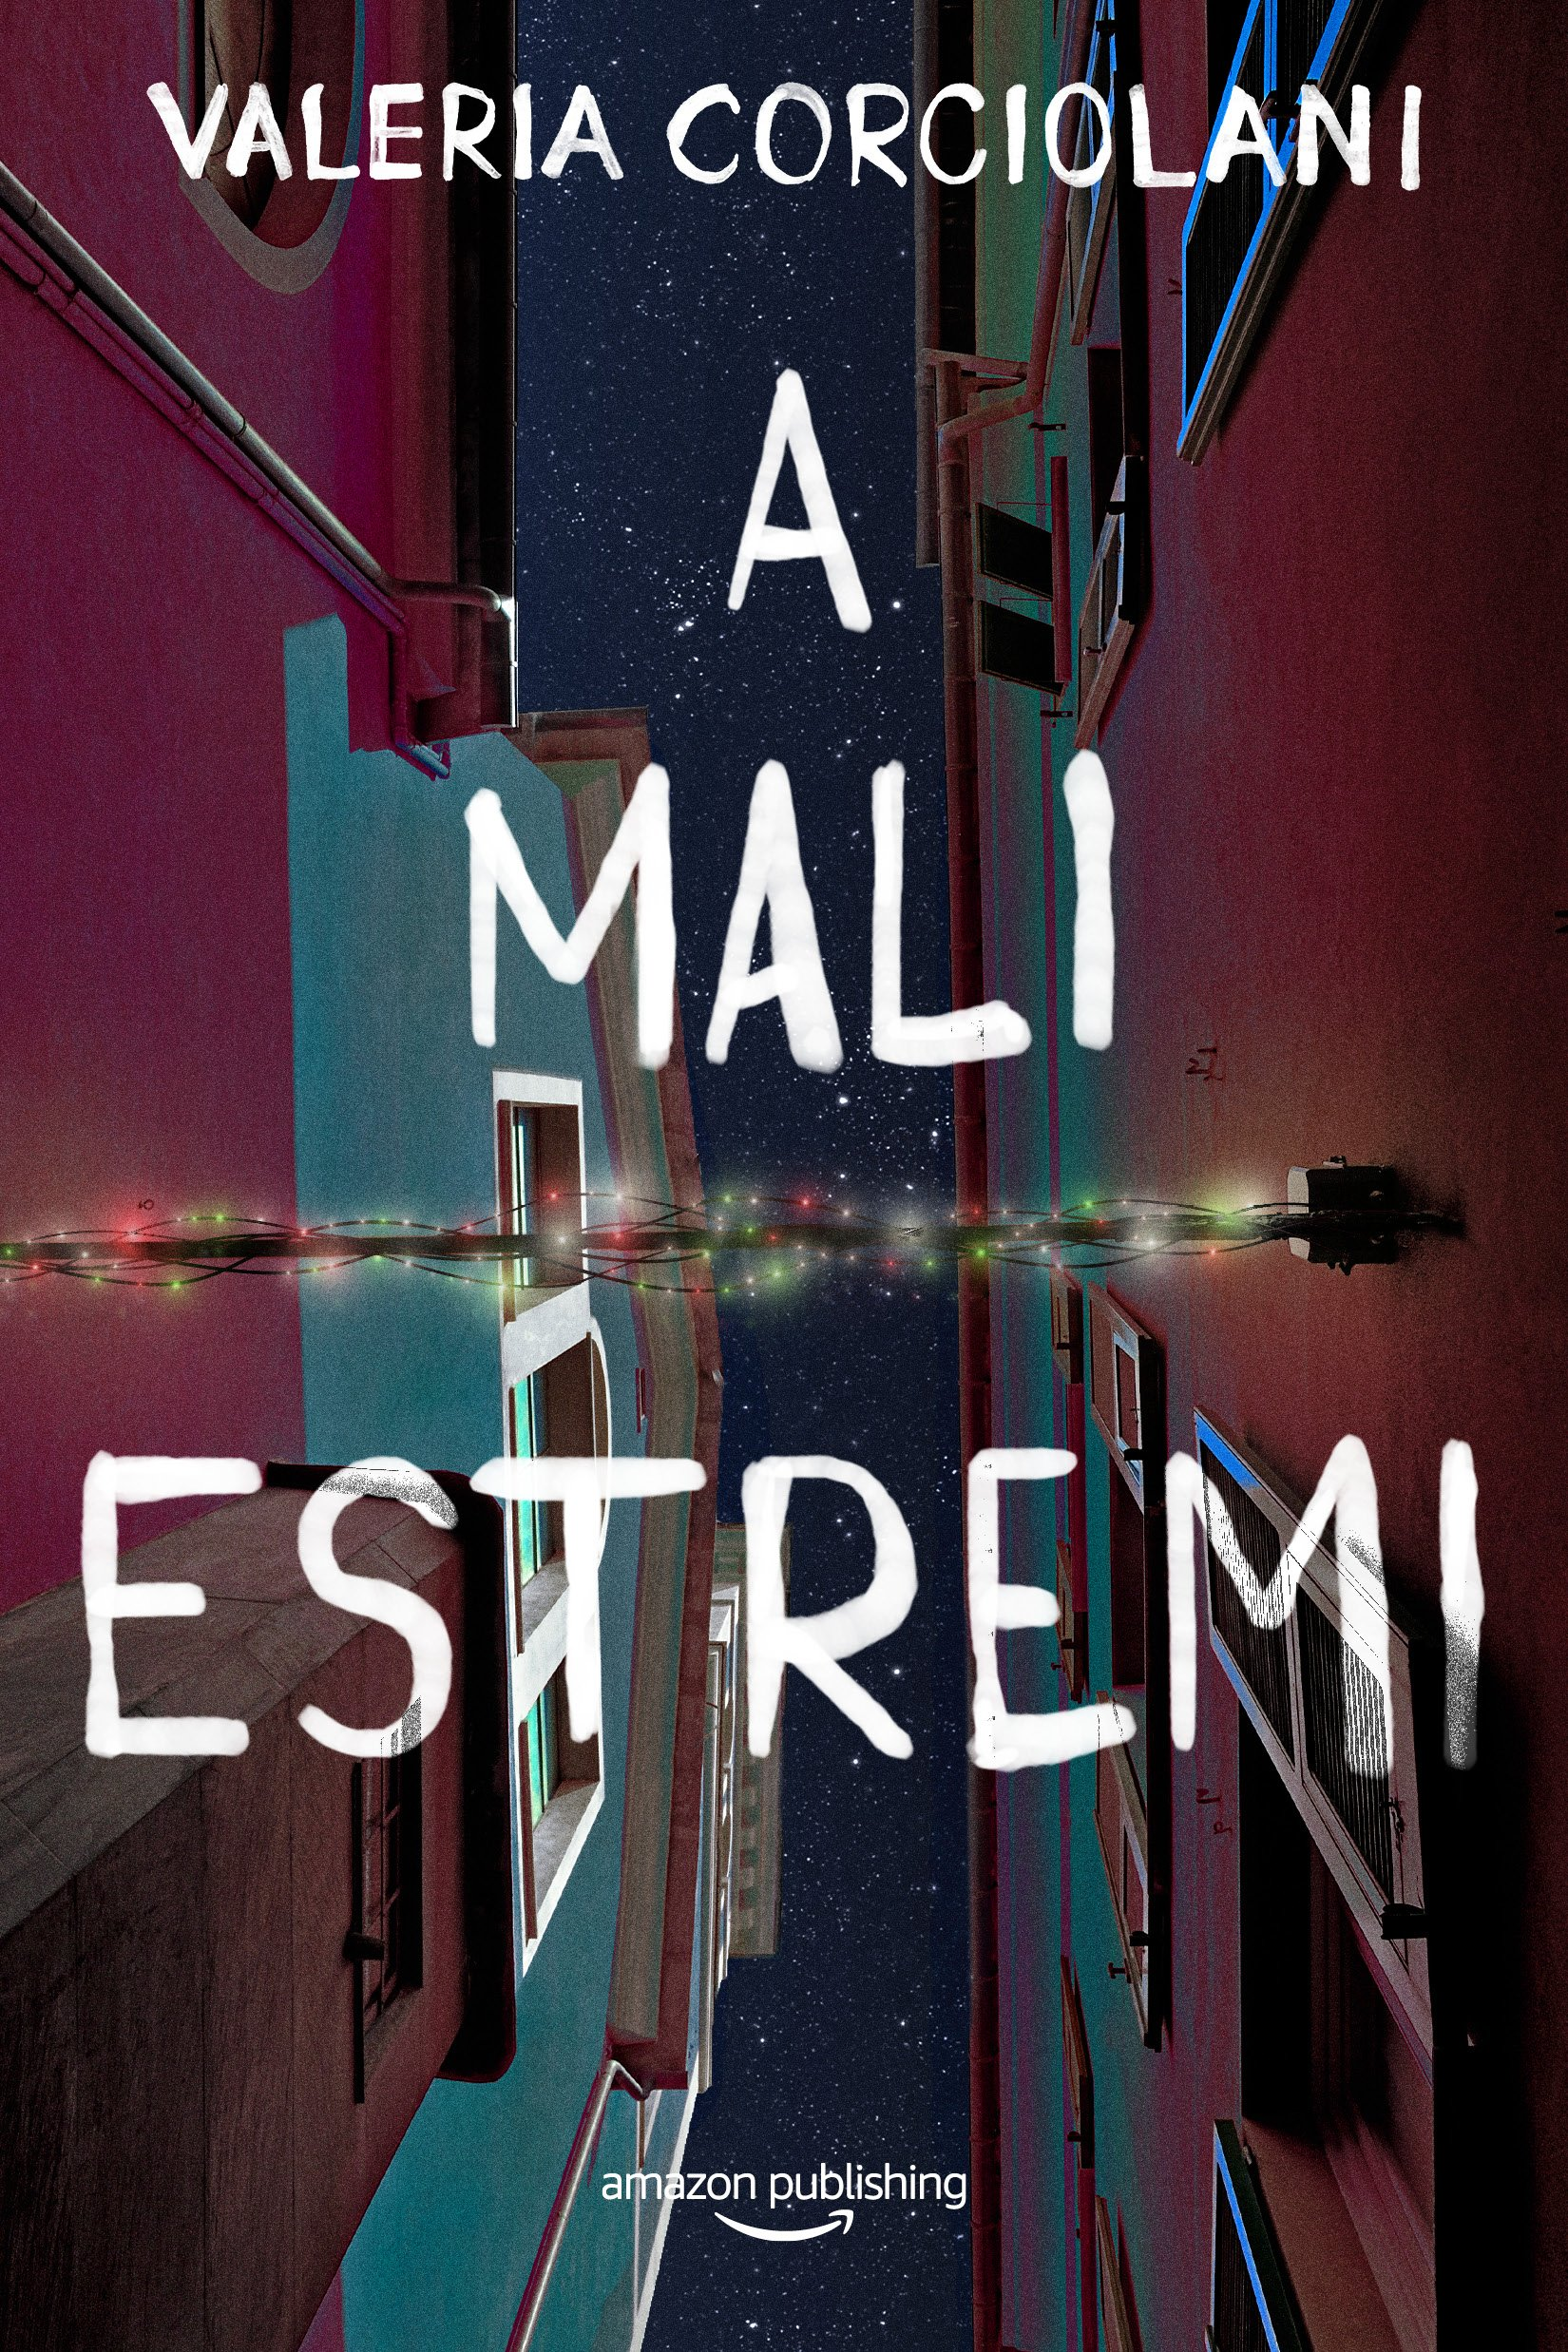 A mali estremi Copertina flessibile – 20 nov 2018 Valeria Corciolani Amazon Publishing 1503901831 FICTION / General